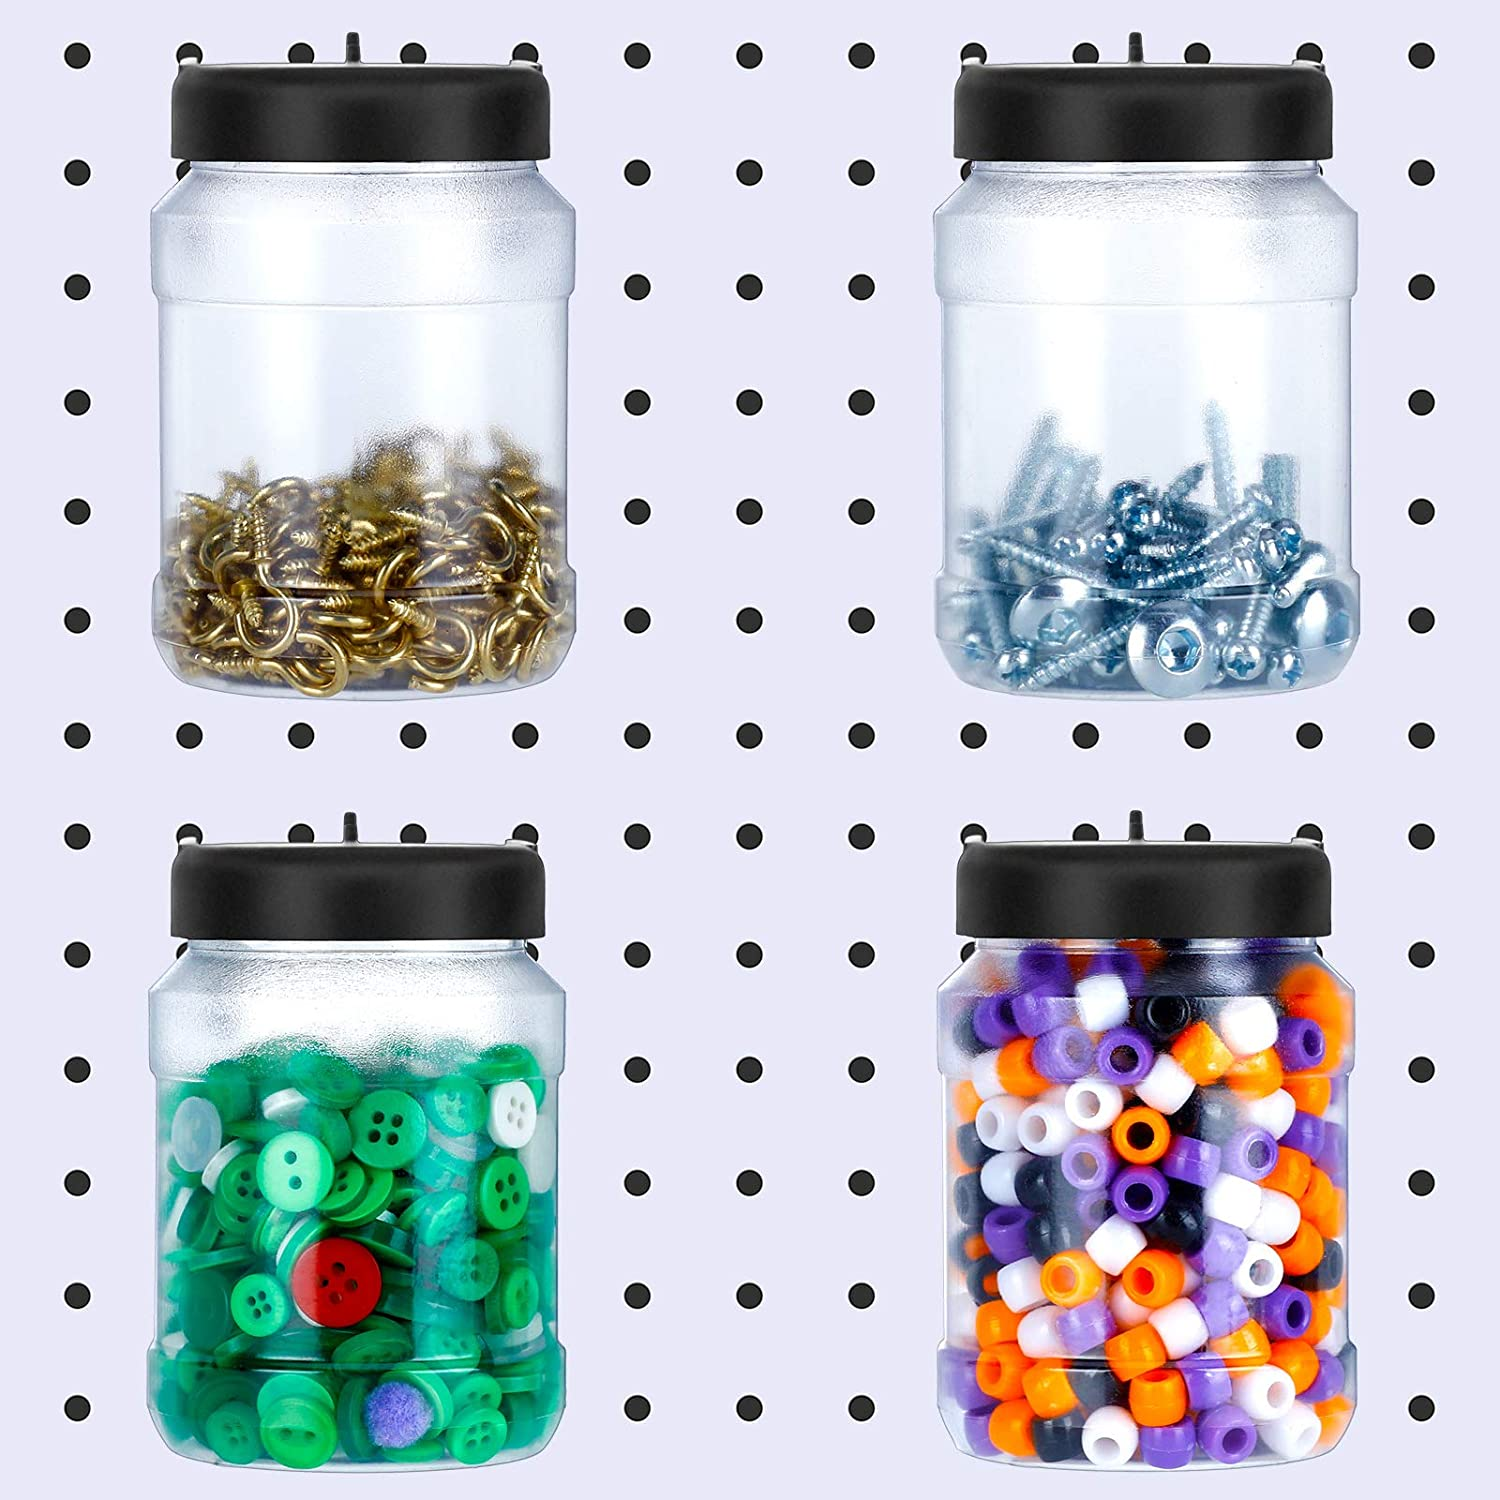 4 Pieces Pegboard Bins Accessories Pegboard Organizer Storage Jars Crush and Impact Resistant Plastic Pegboard Jars for DIY Food Storage, Craft, Garage Storage and Sewing